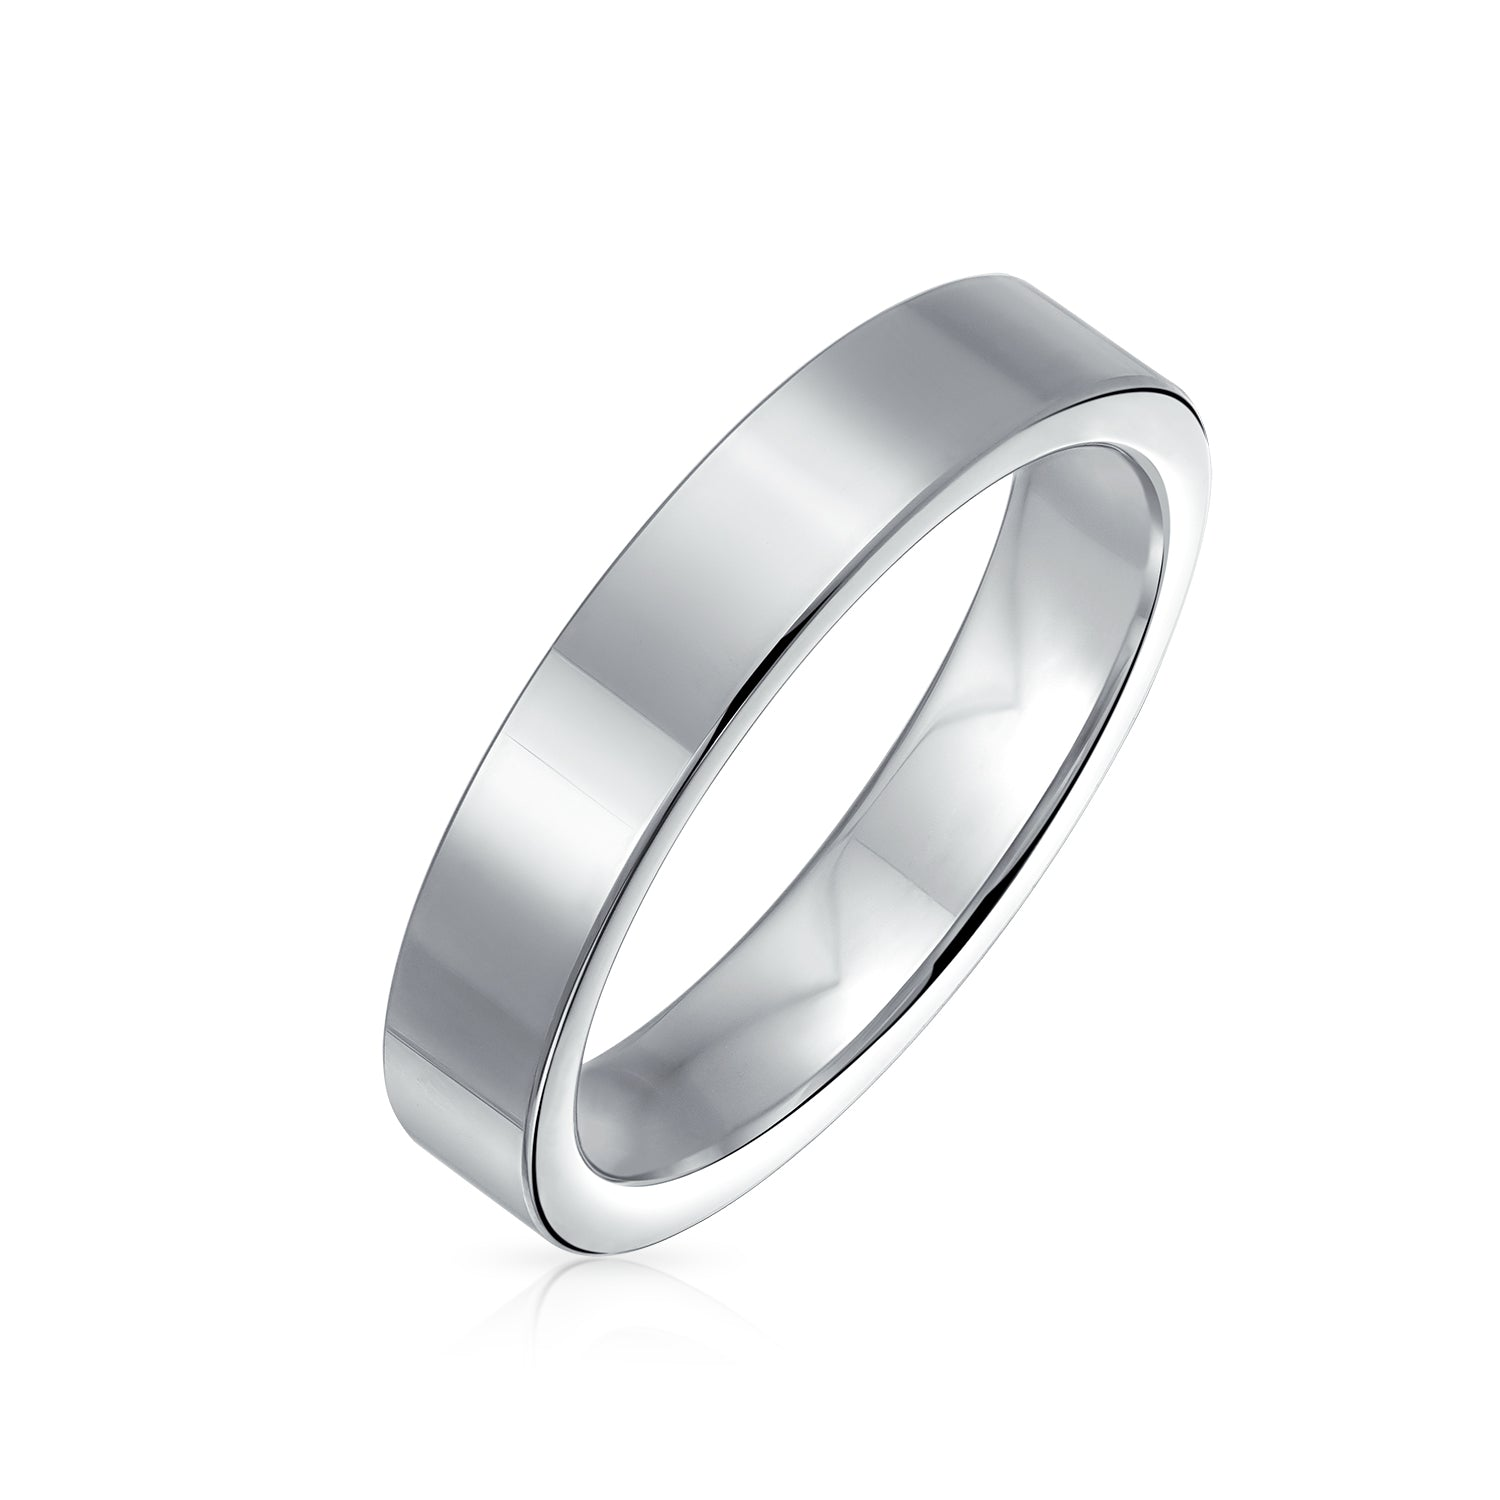 This is a graphic of Flat Cigar Couples Wedding Band Titanium Rings For Men Silver Tone 48MM